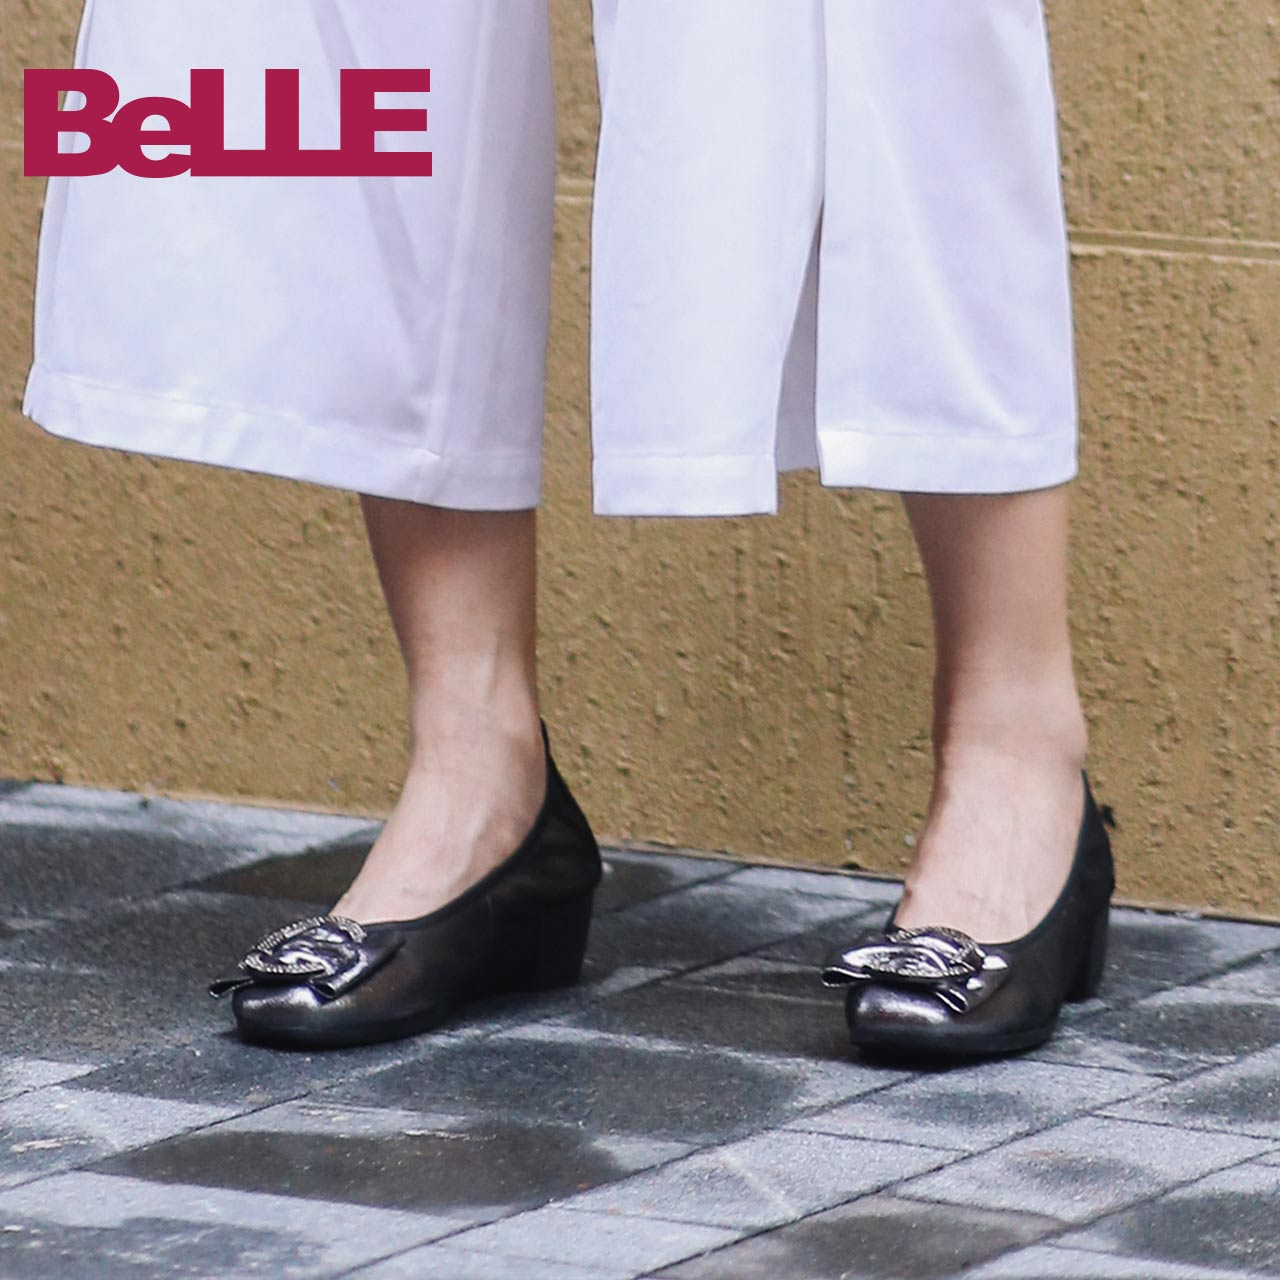 Belle's single shoe mall same new style sheepskin fashion shallow slope middle heel women's shoes buh03cq8